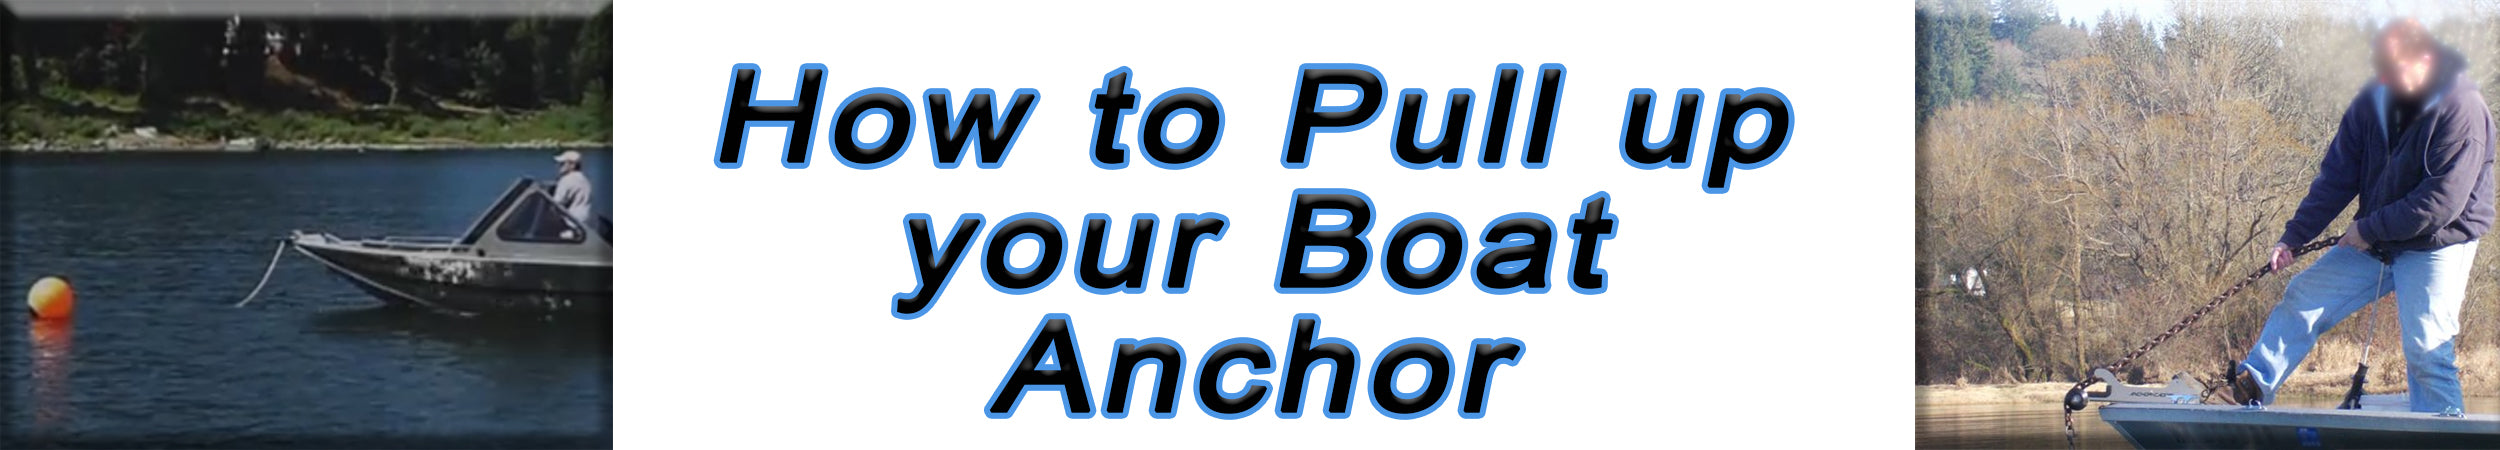 How to pull up your boat anchor